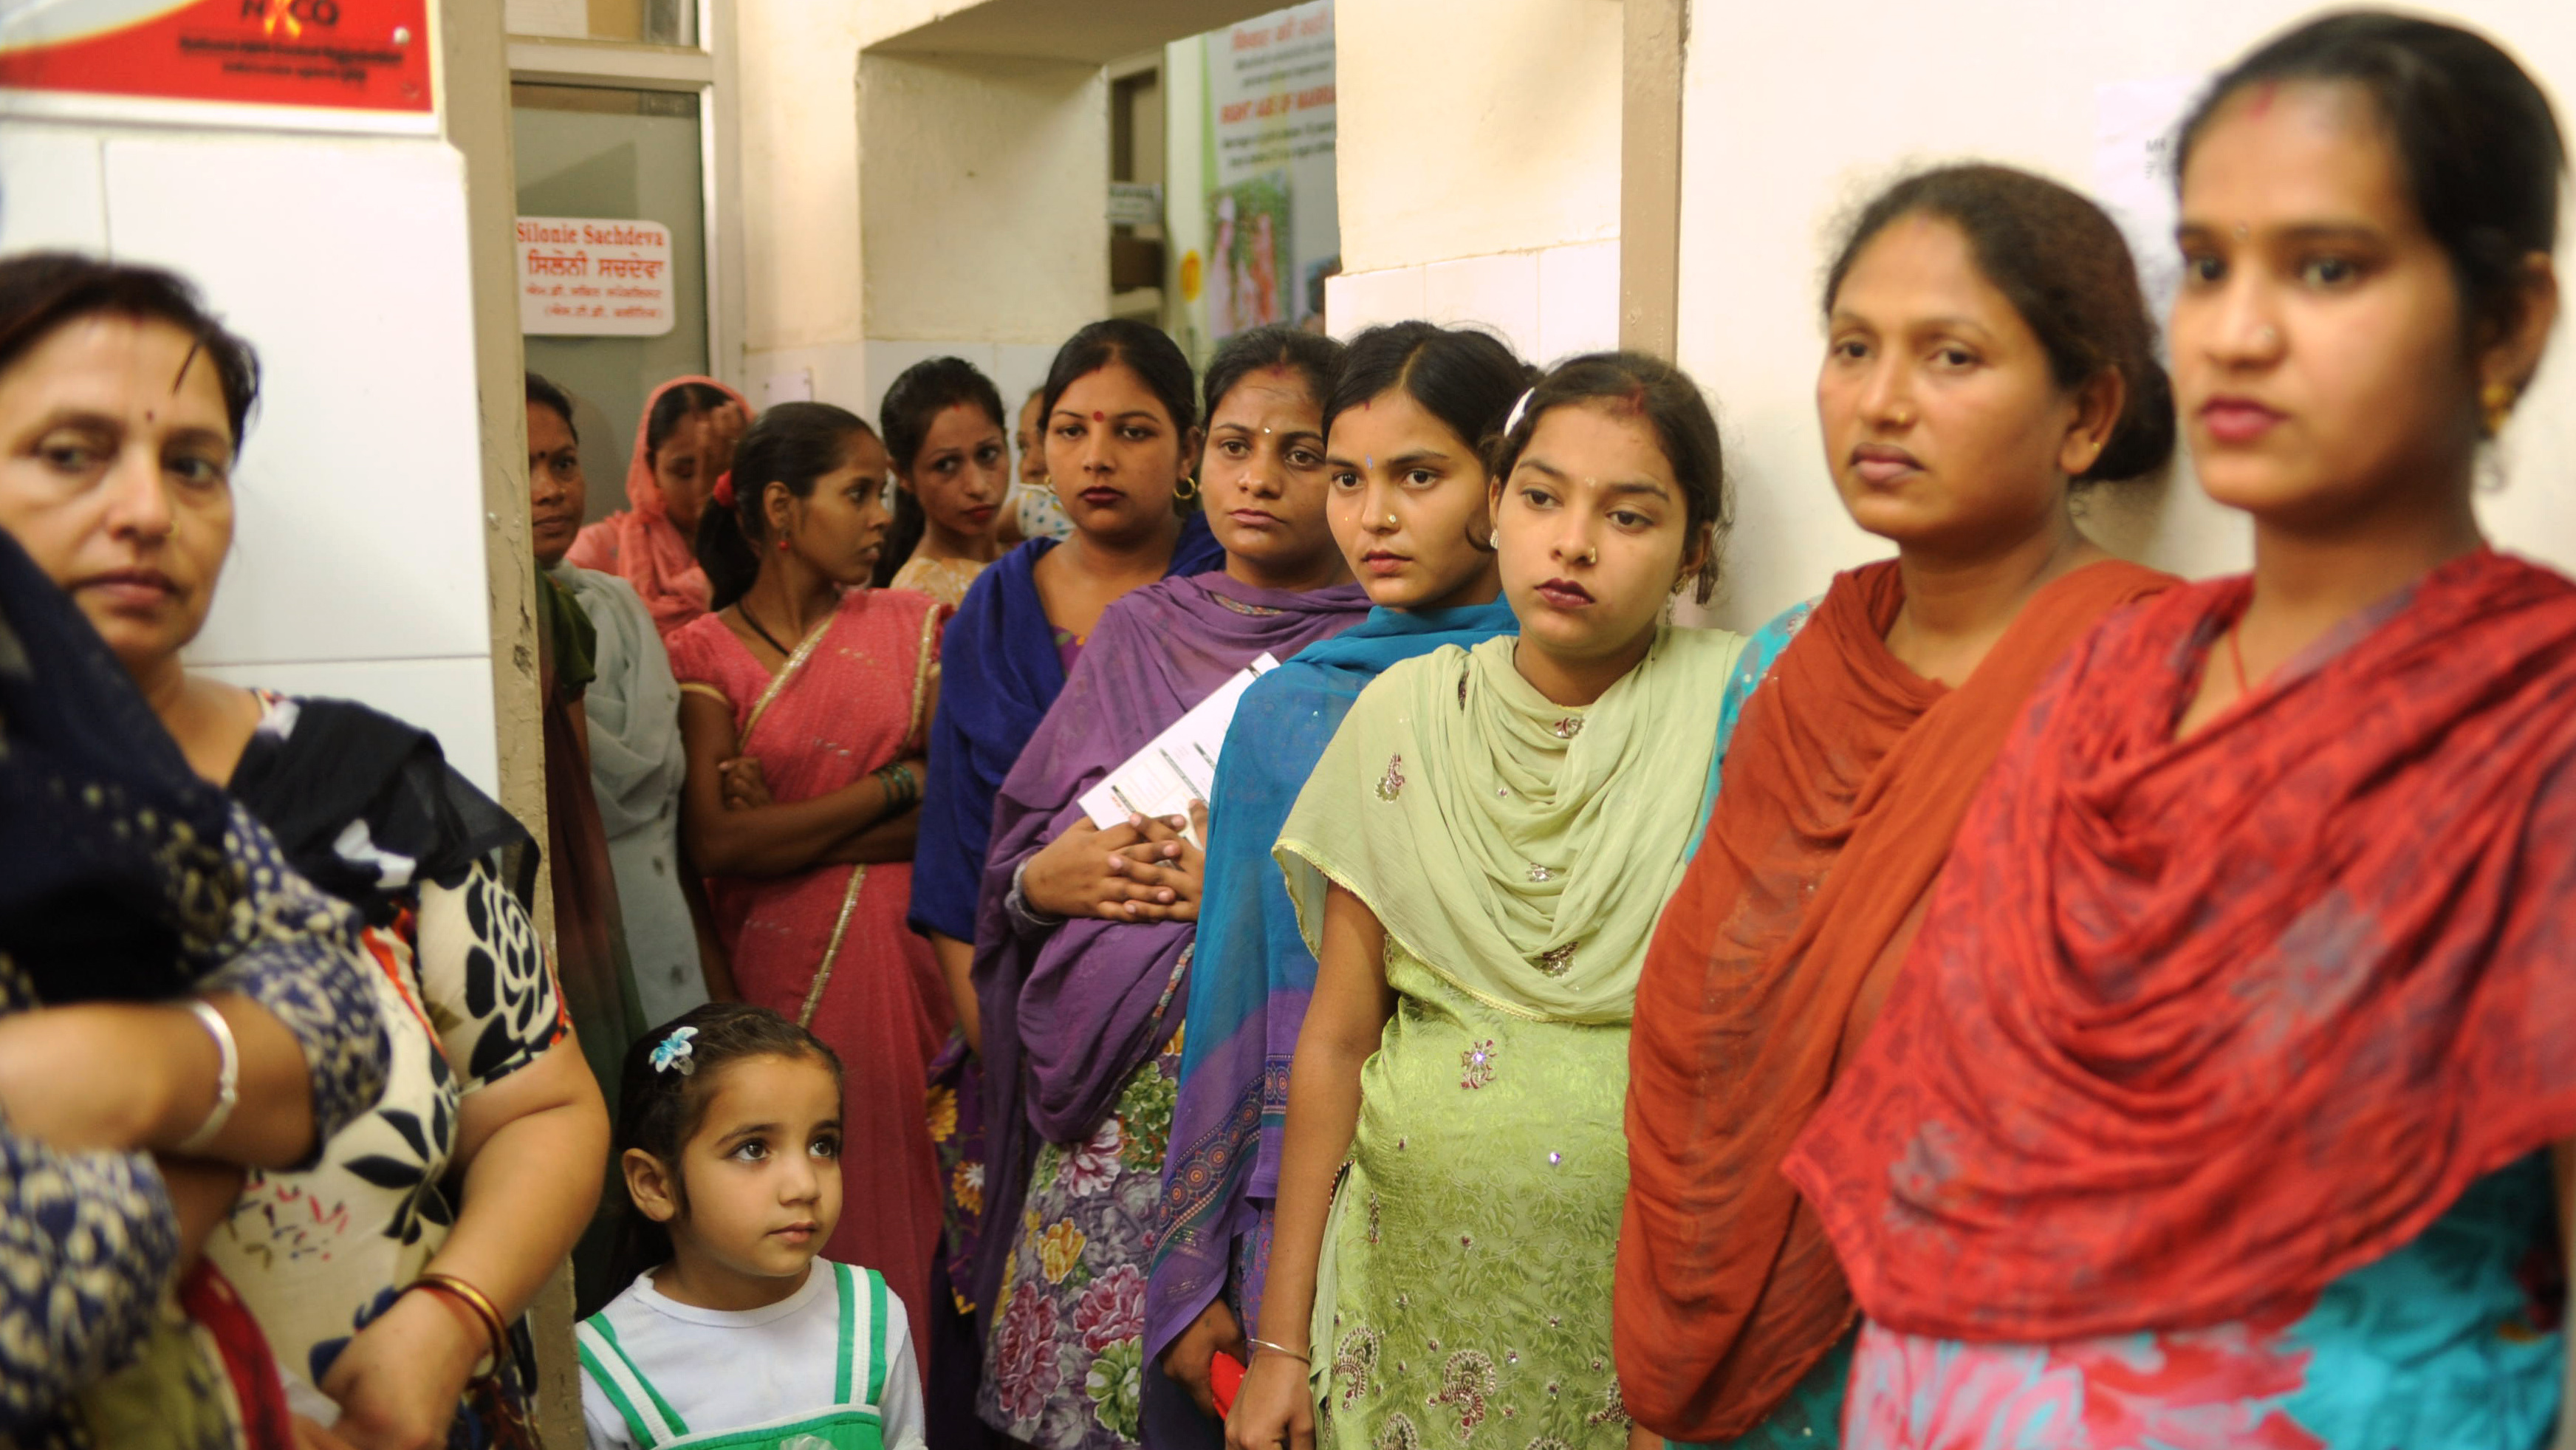 Expecting mothers wait for exams at a hospital in Punjab, India. This region had an abysmal sex ratio a decade ago, but has recently had a turnaround, with 949 girls born for every 1,000 boys.